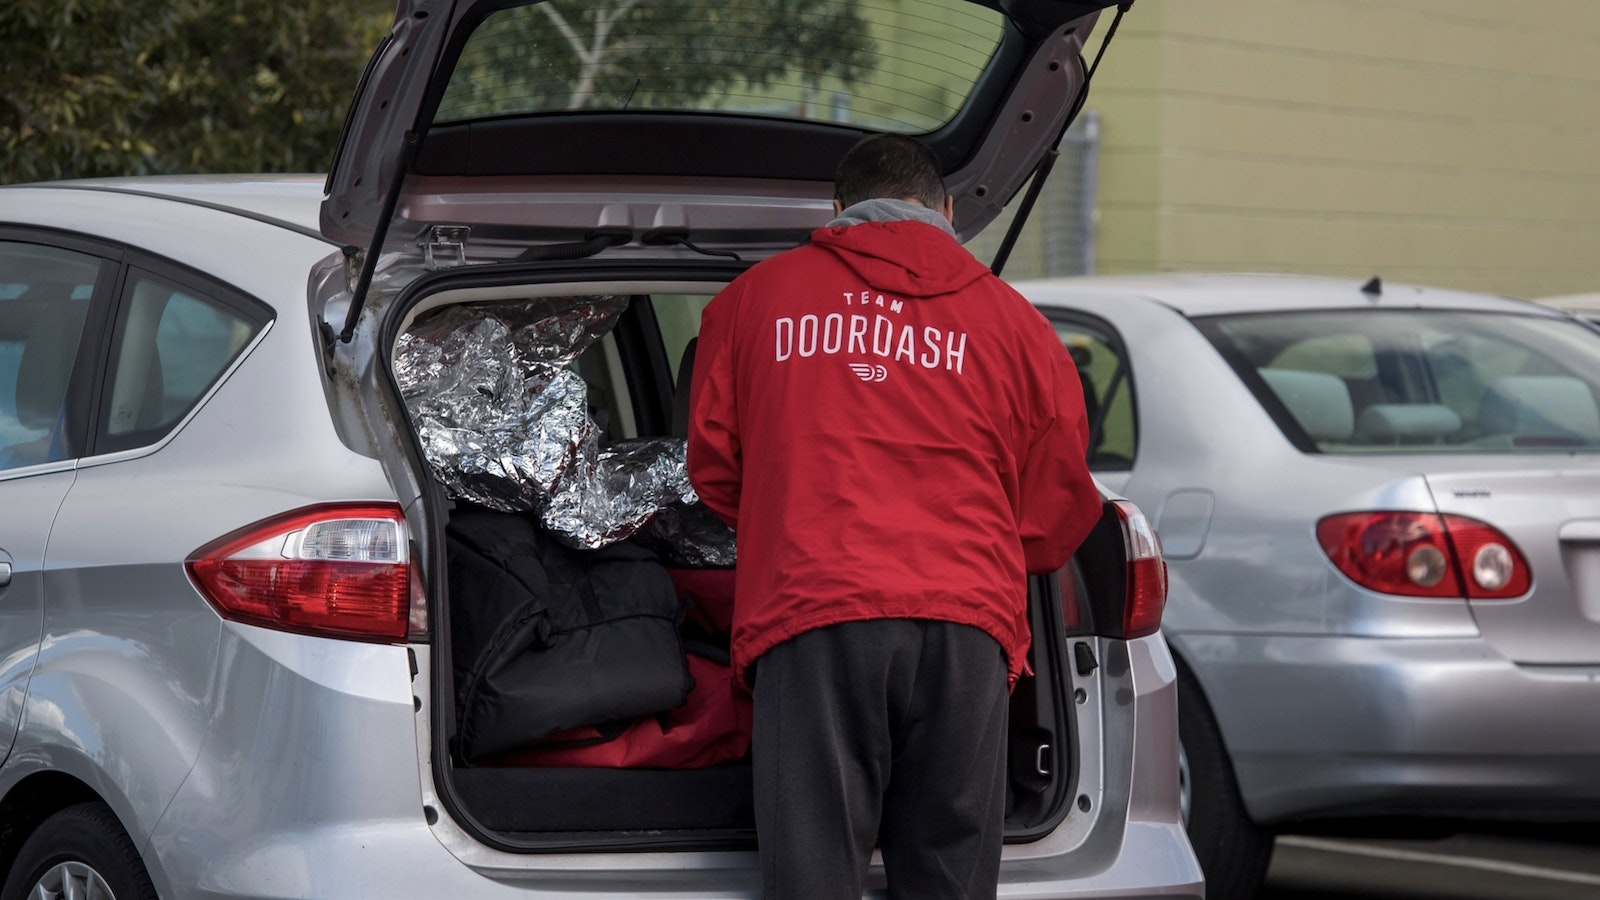 A DoorDash delivery person. Photo by Bloomberg